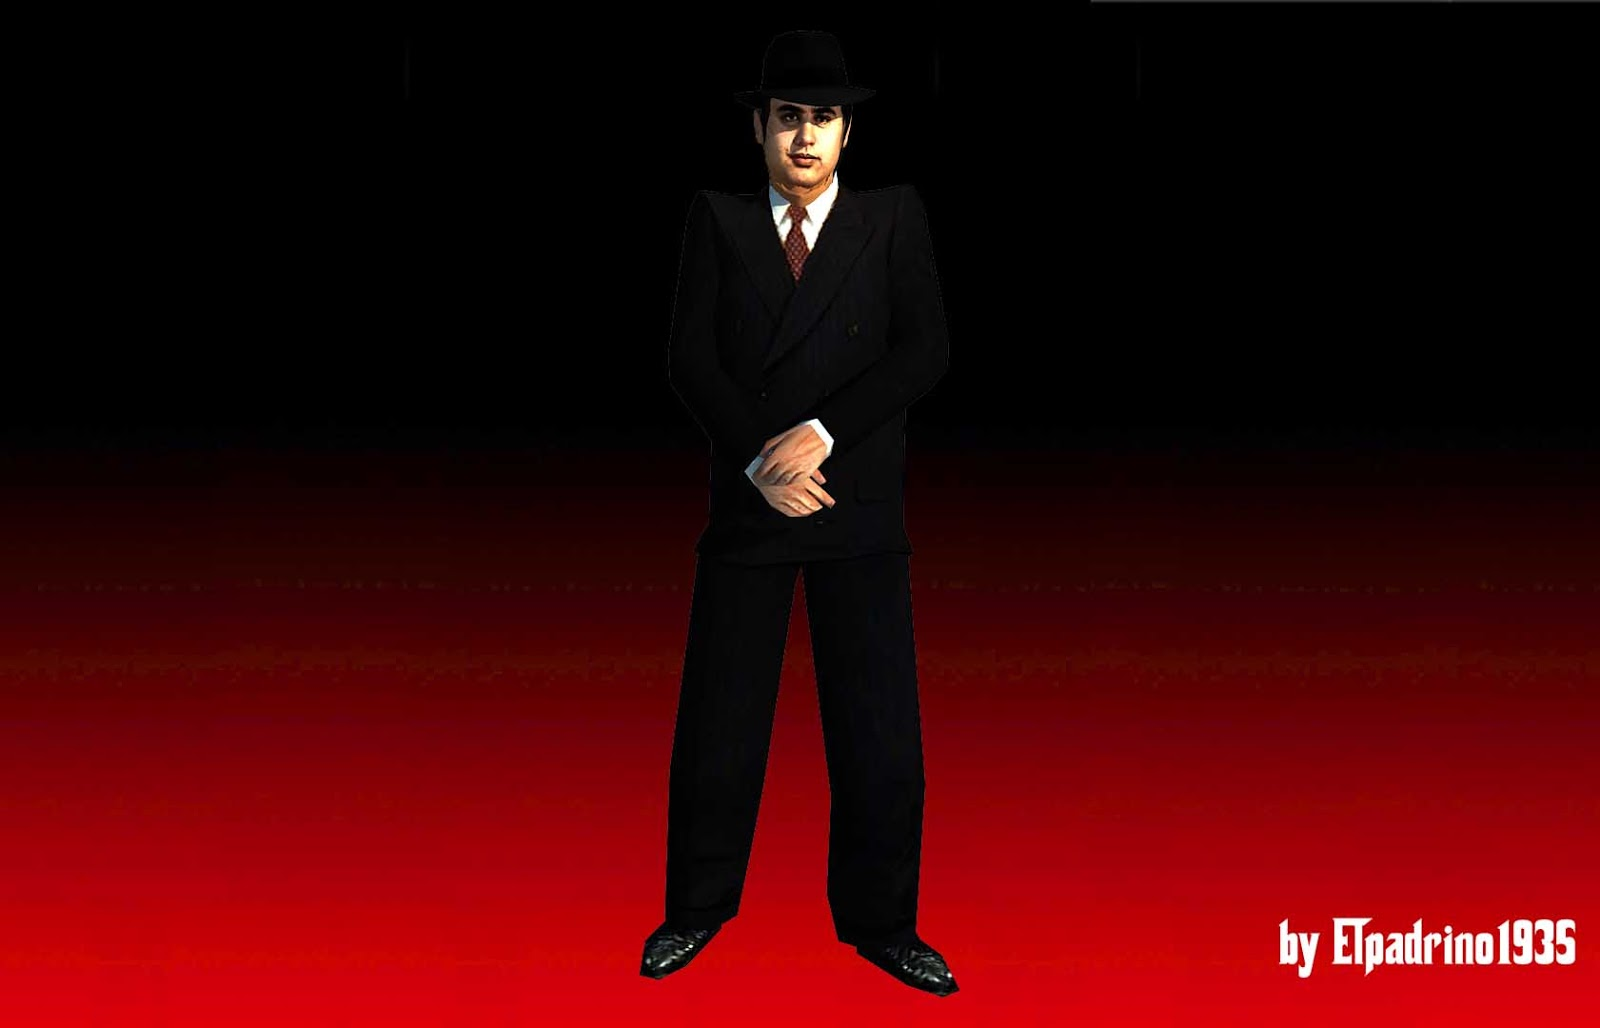 Elpadrino1935 skins al capone real mafia celebrities for Fenetre 4 vantaux